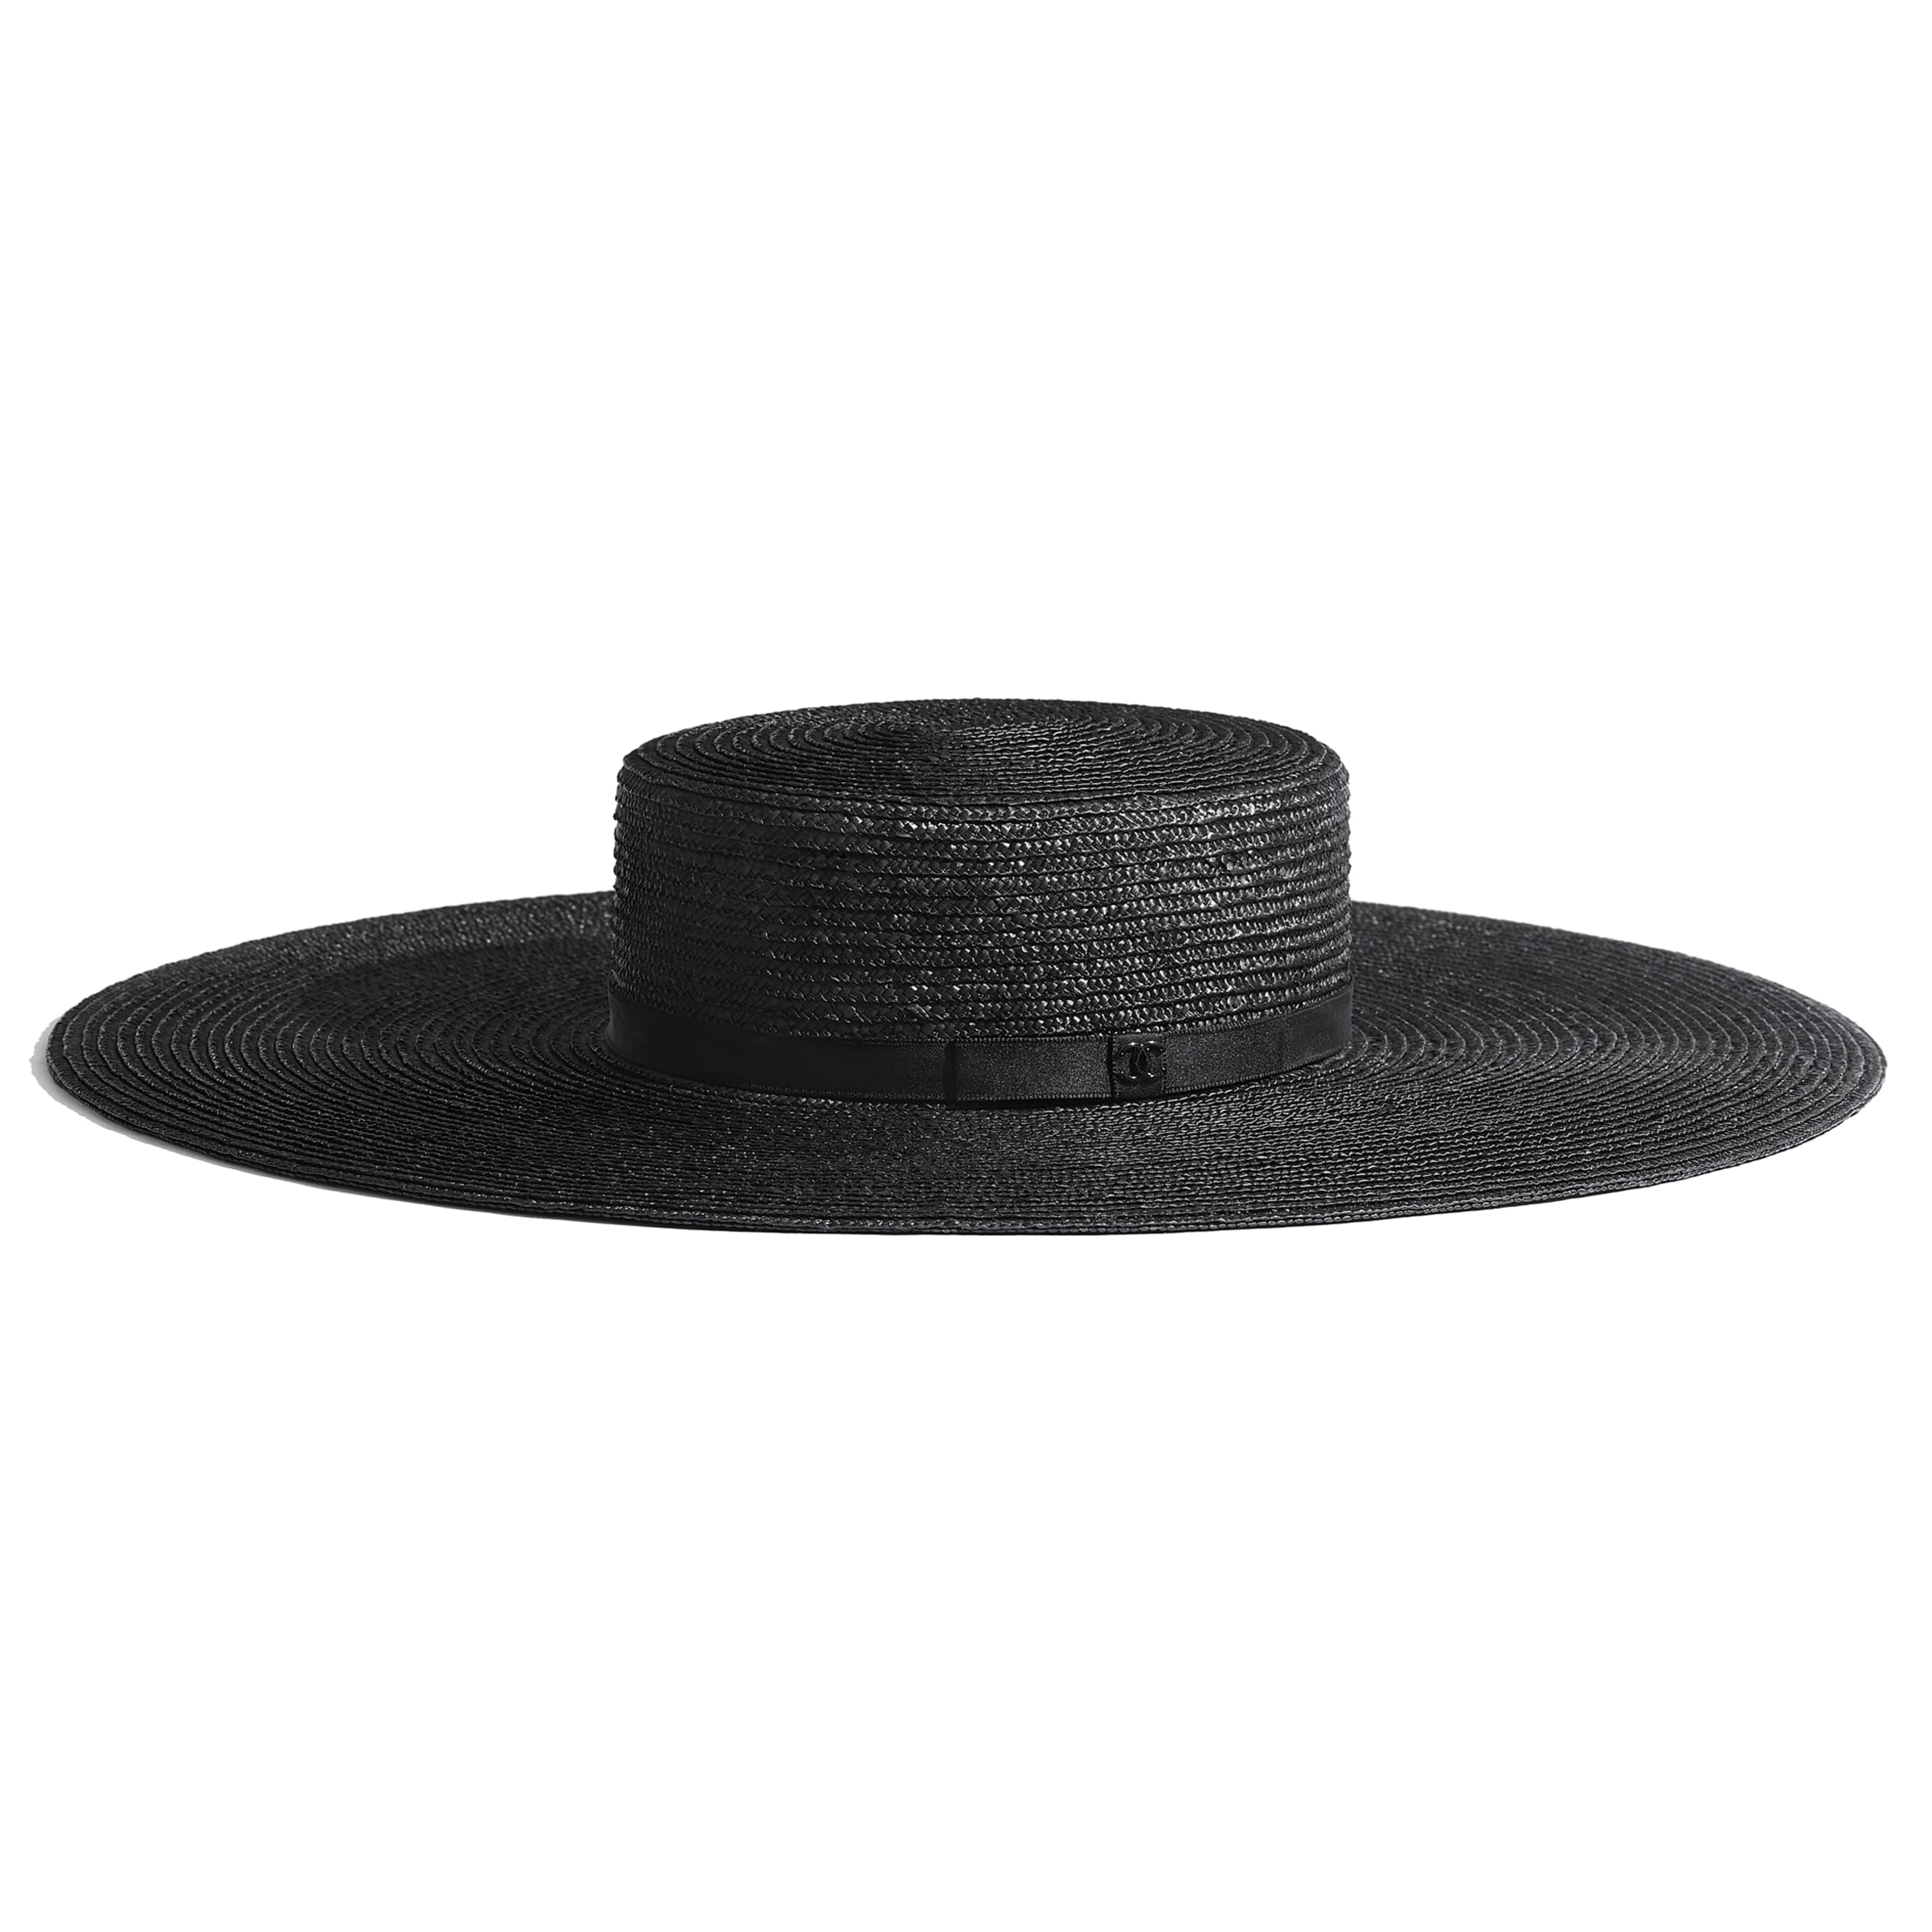 Wide-Brimmed Hat - Black - Straw & Silk - CHANEL - Default view - see standard sized version